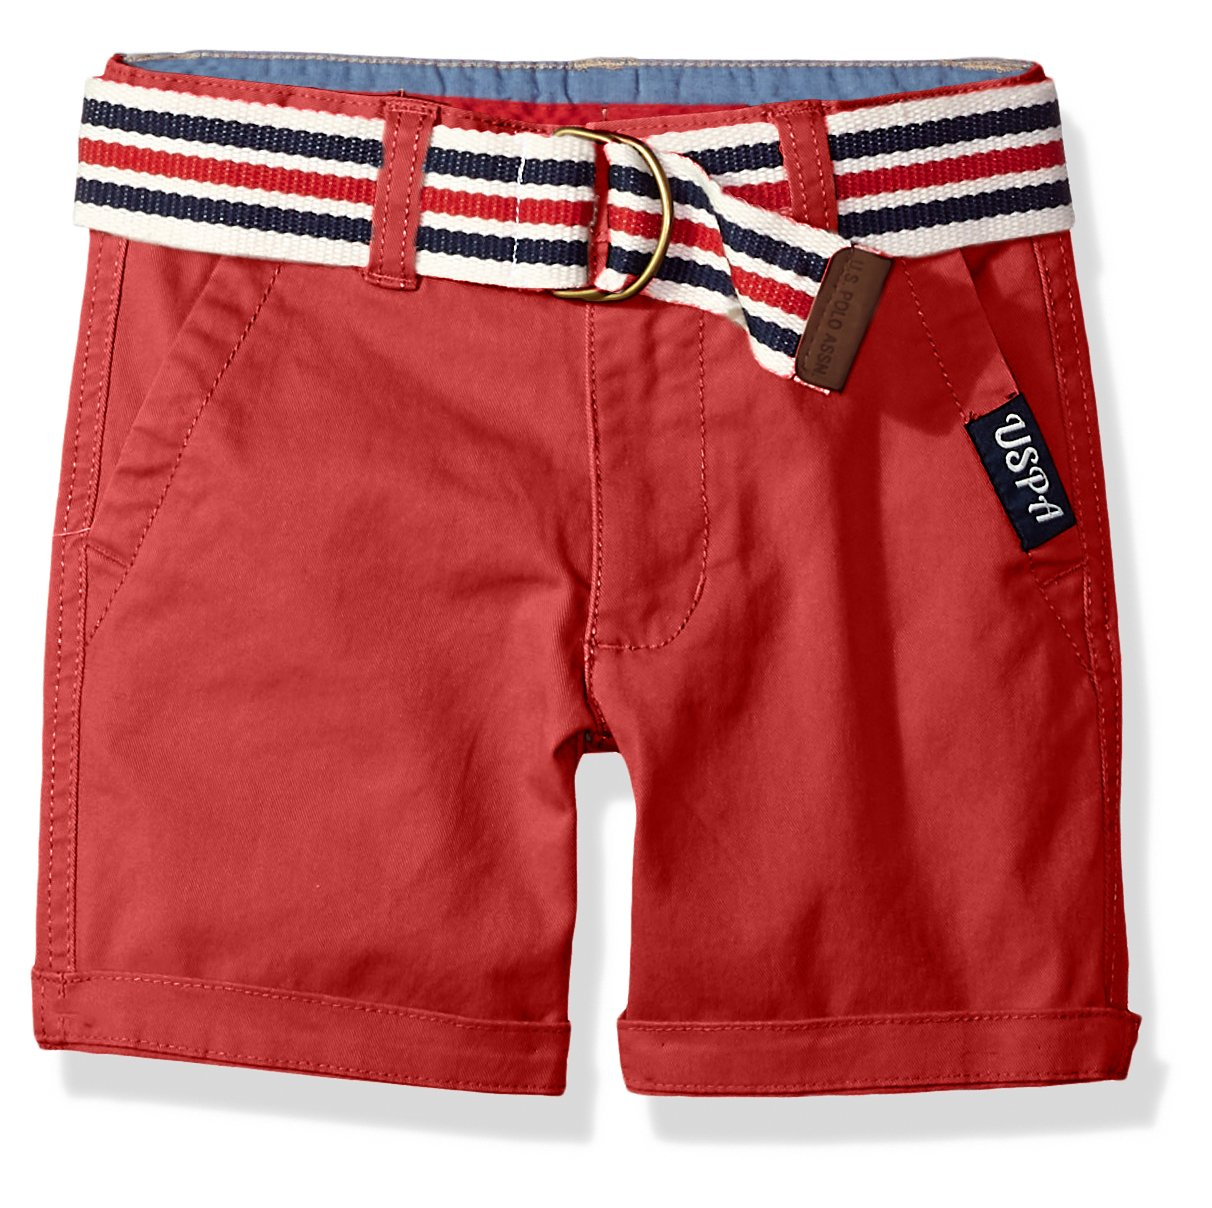 U.S. Polo Assn. Boys' Toddler Short, Large Roll up Cuff Nantucket red, 2T